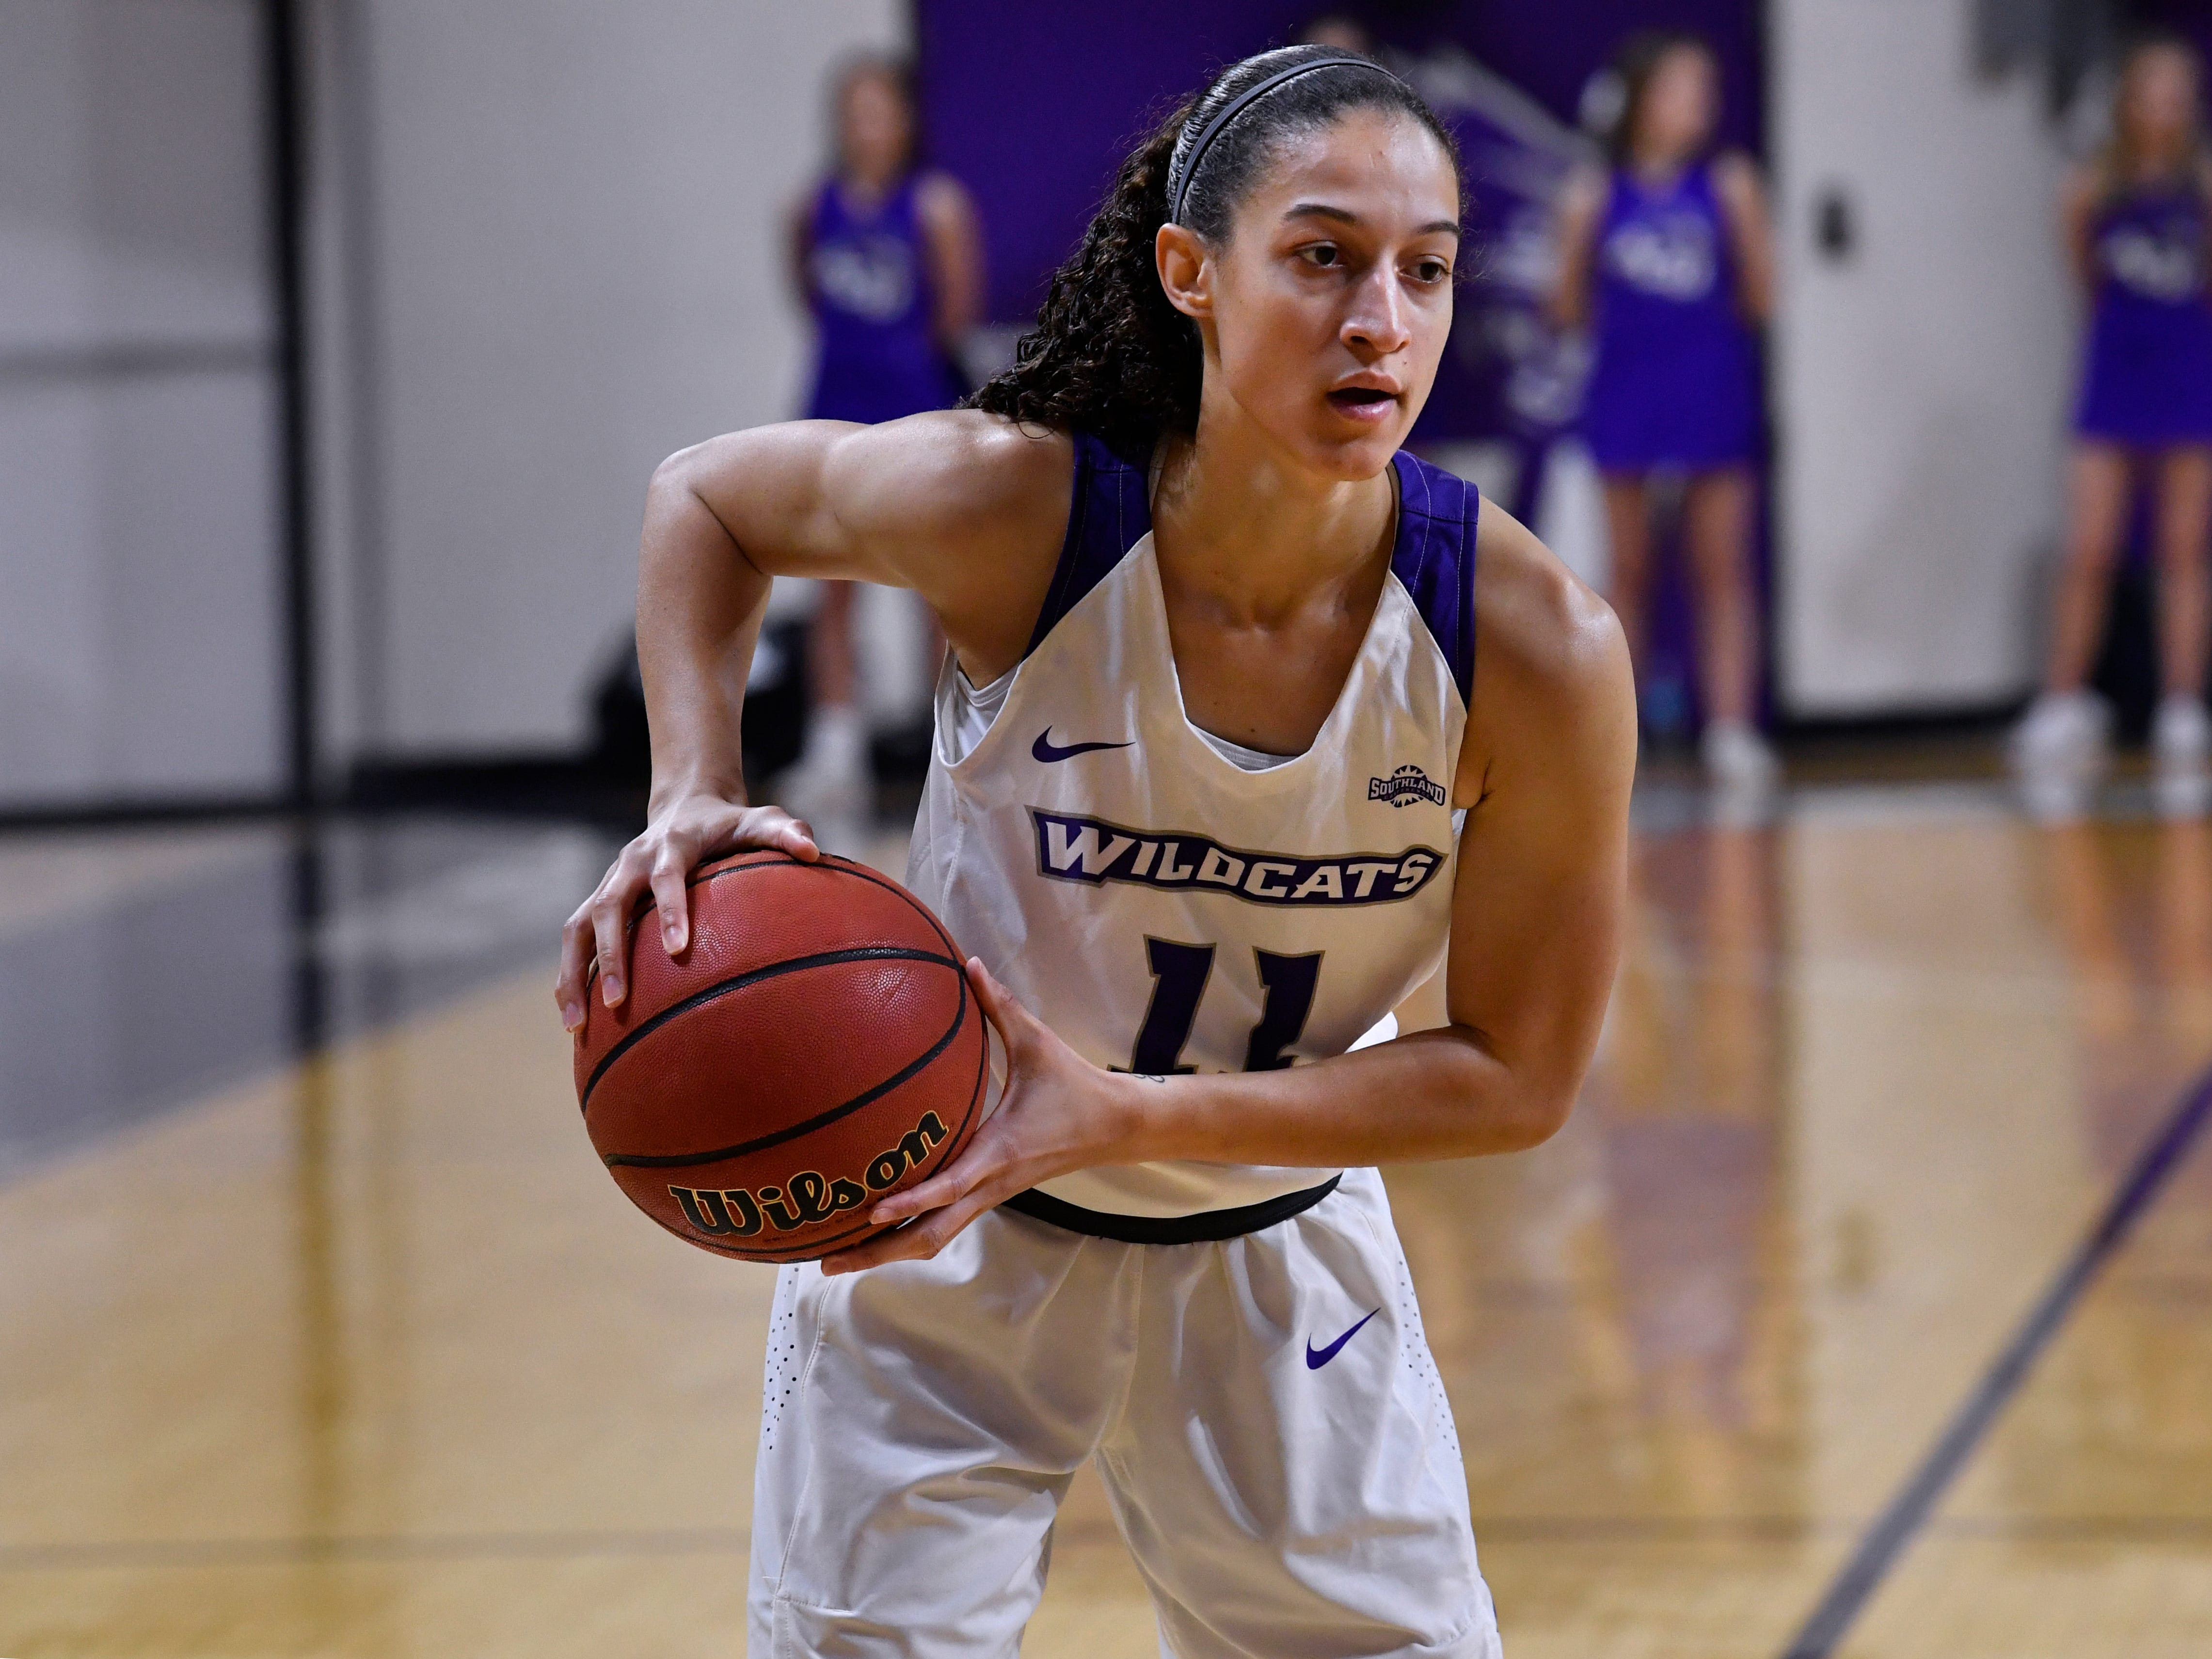 Sara Williamson looks for an opening near the key during Abilene Christian University's women's basketball game against Central Arkansas Saturday Jan. 26, 2019. Final score was 77-70, ACU.